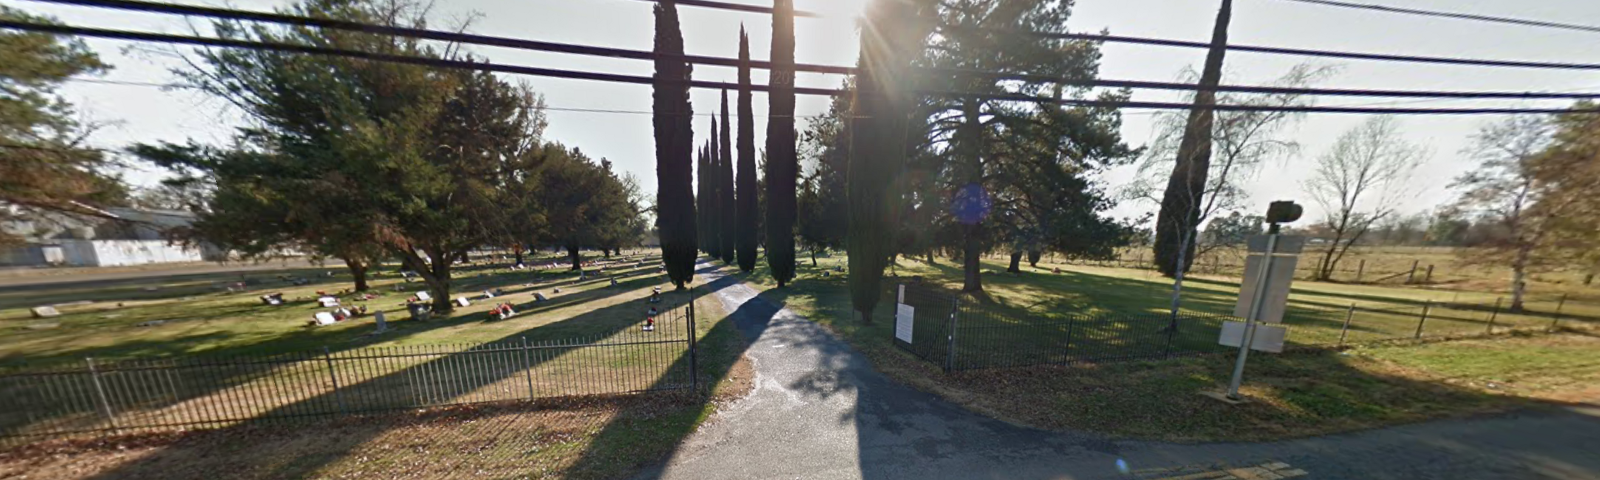 The entrance to Cottonwood Cemetery, Cottonwood, California